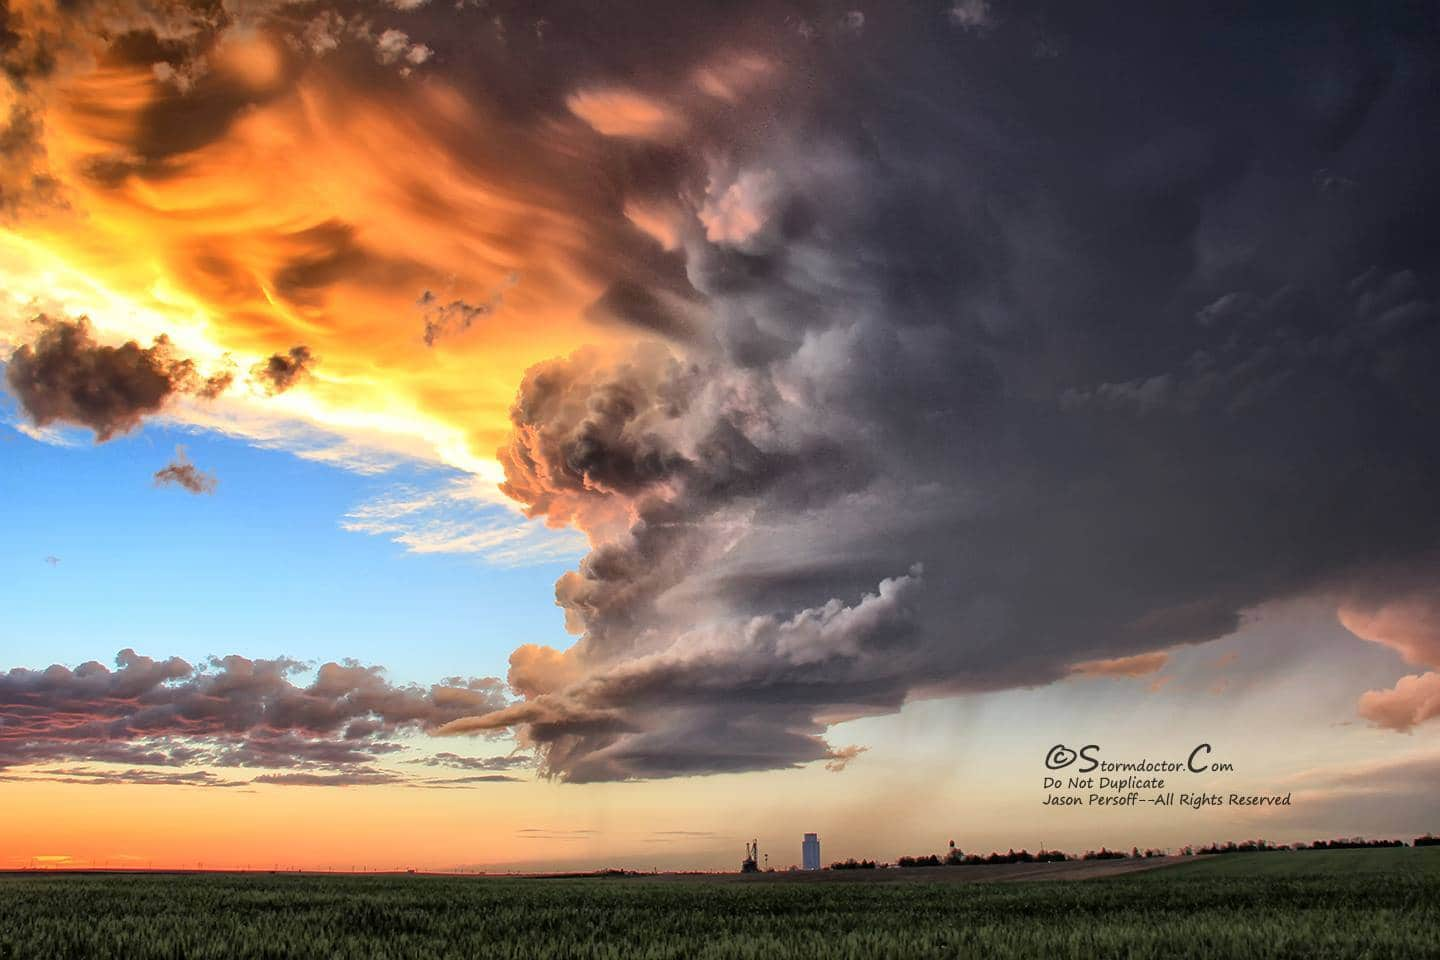 Amazing LP supercell at sunset near Gurley, OK, on 6/2/2015. Barber-poling and stunning colors.